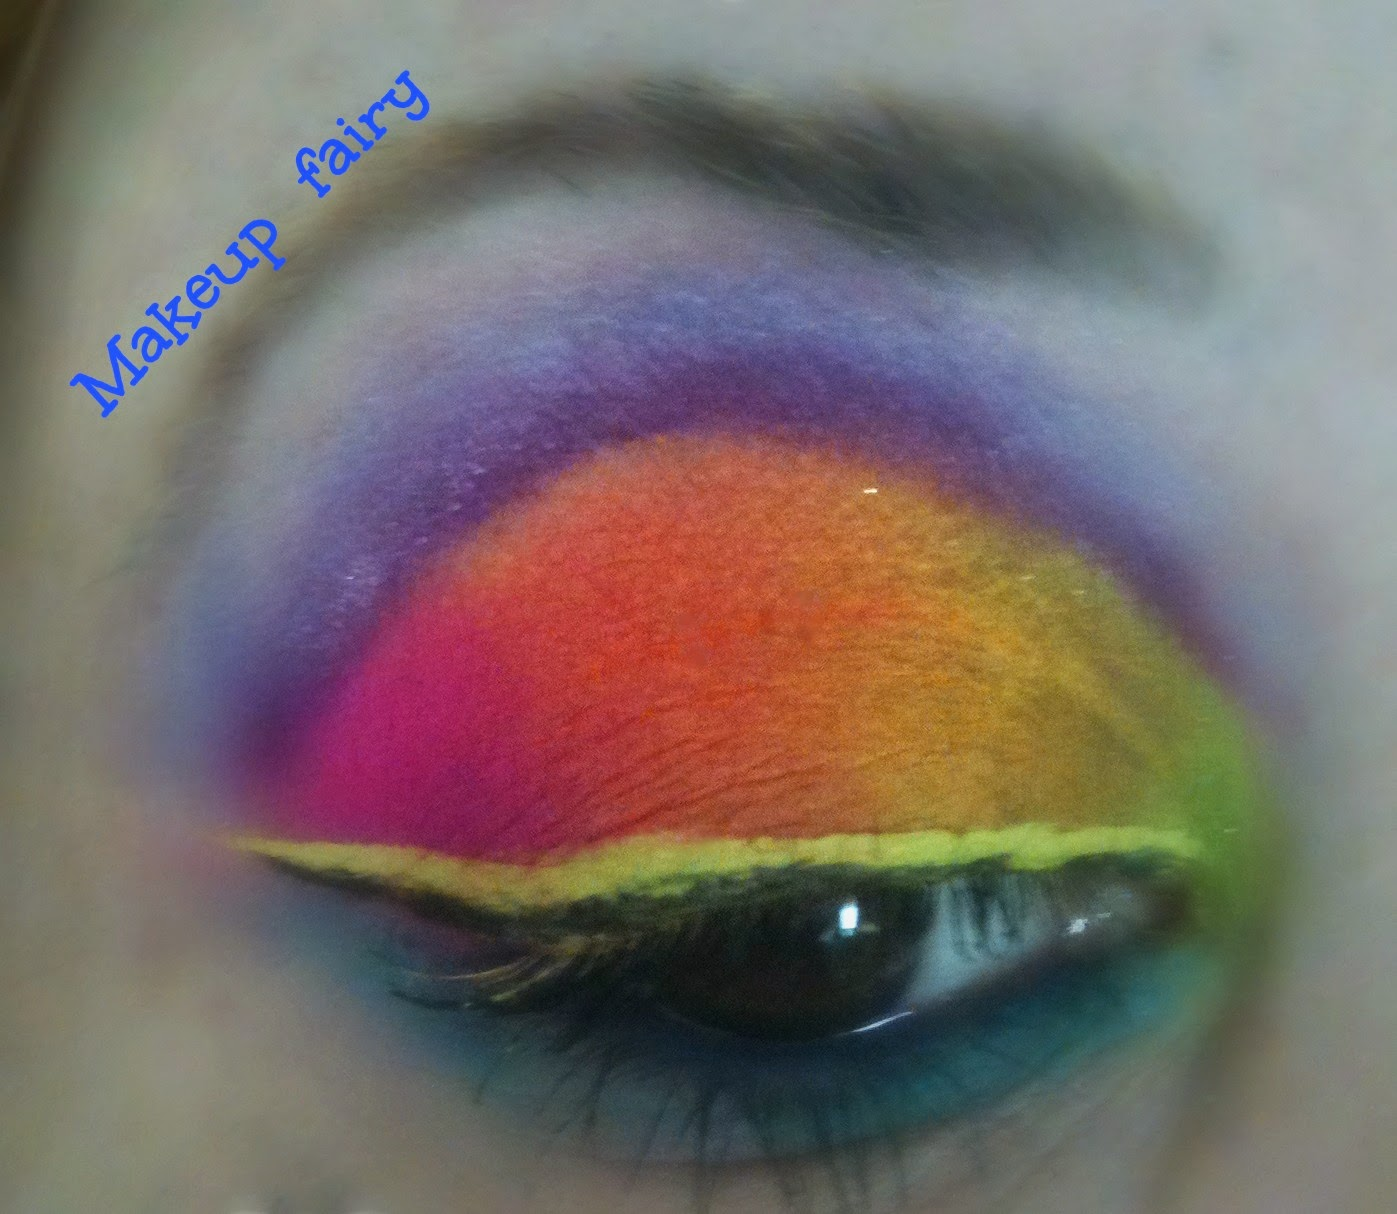 15 Trucchi In Cucina i ♥ rainbow! cut crease makeup look